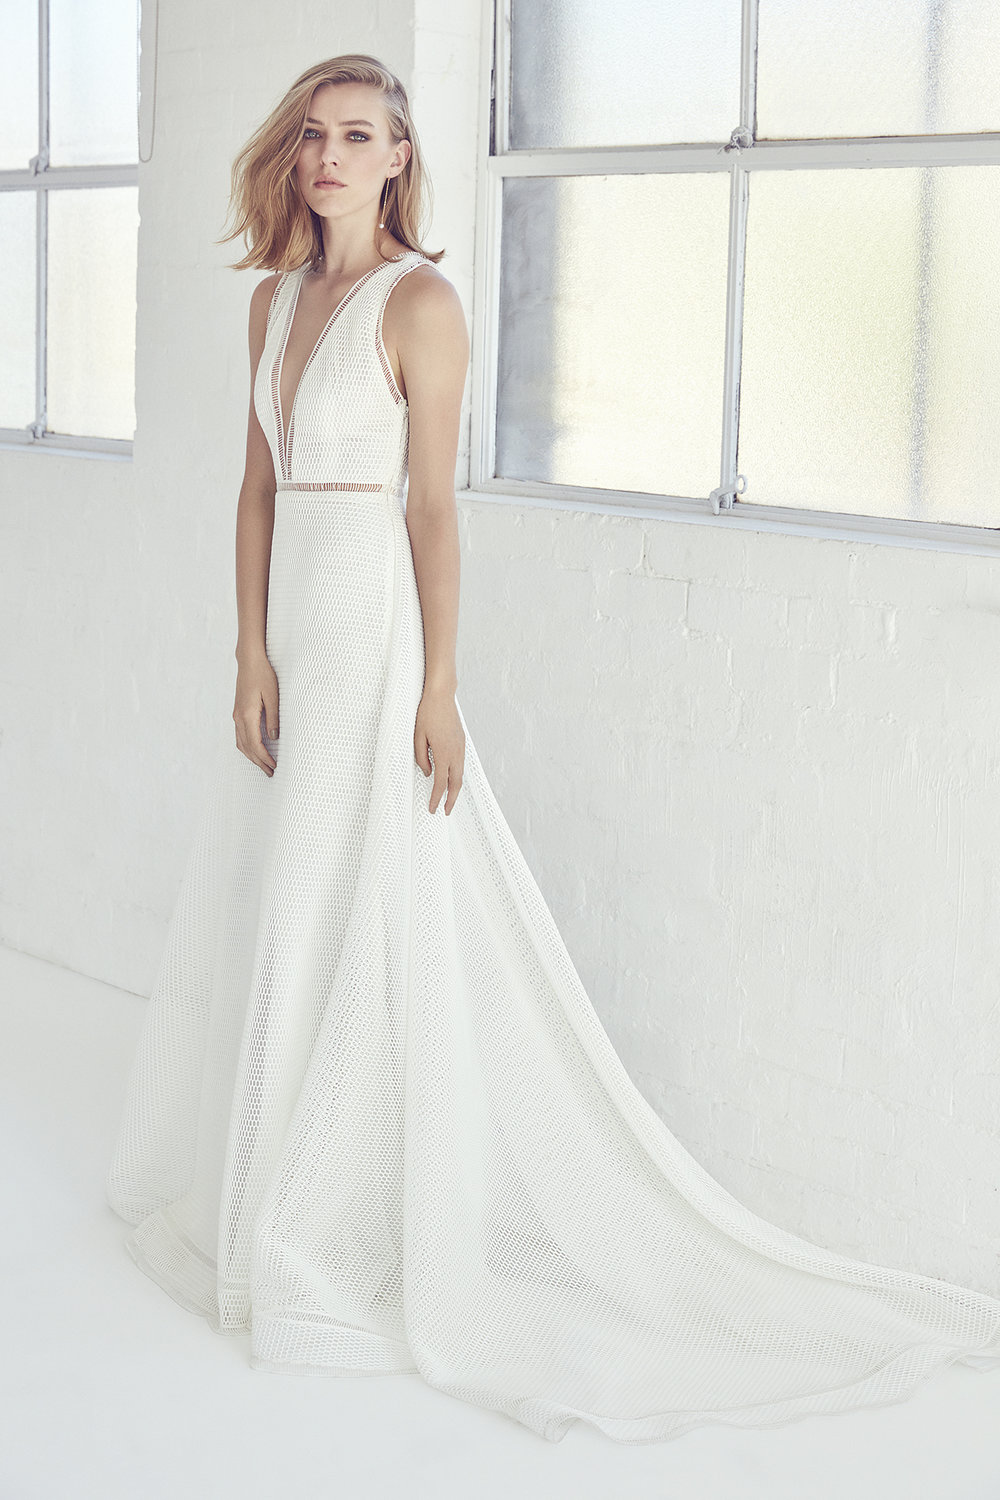 Lunar Gown by Suzanne Harward | LOVE FIND CO.